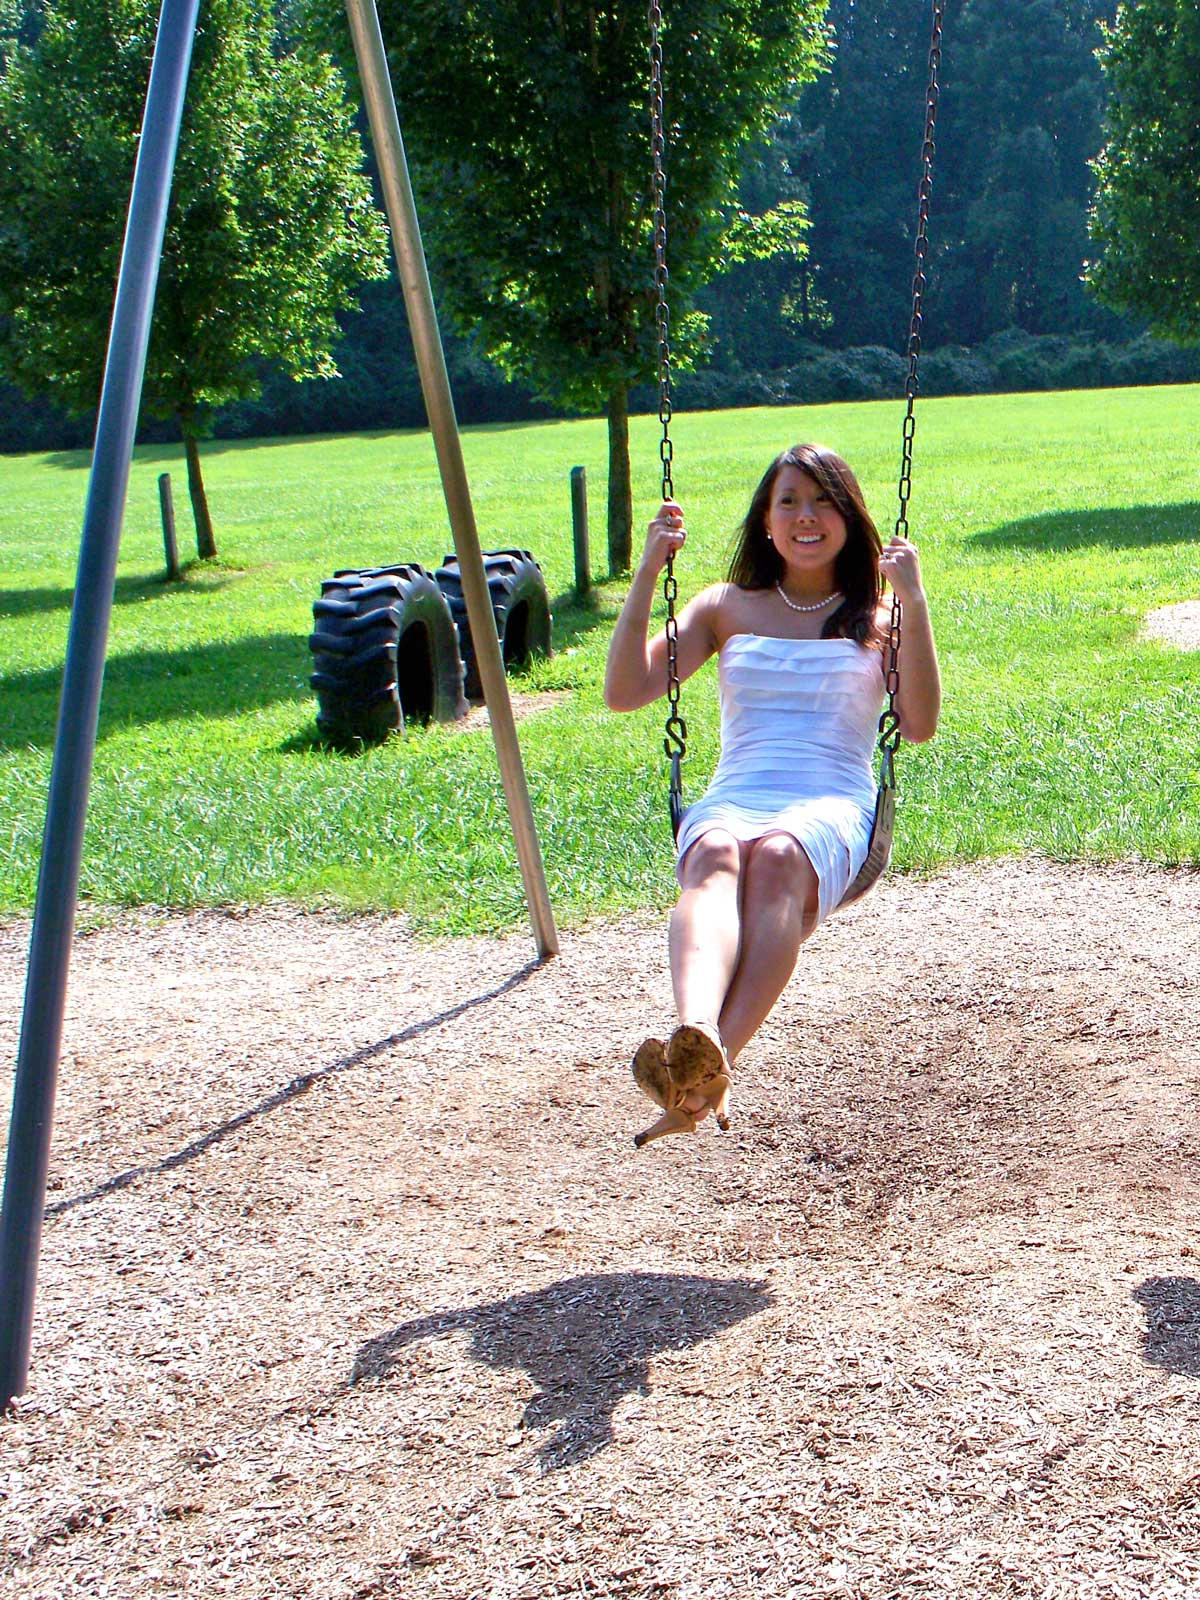 jenn-wedding-2009-swings.jpg